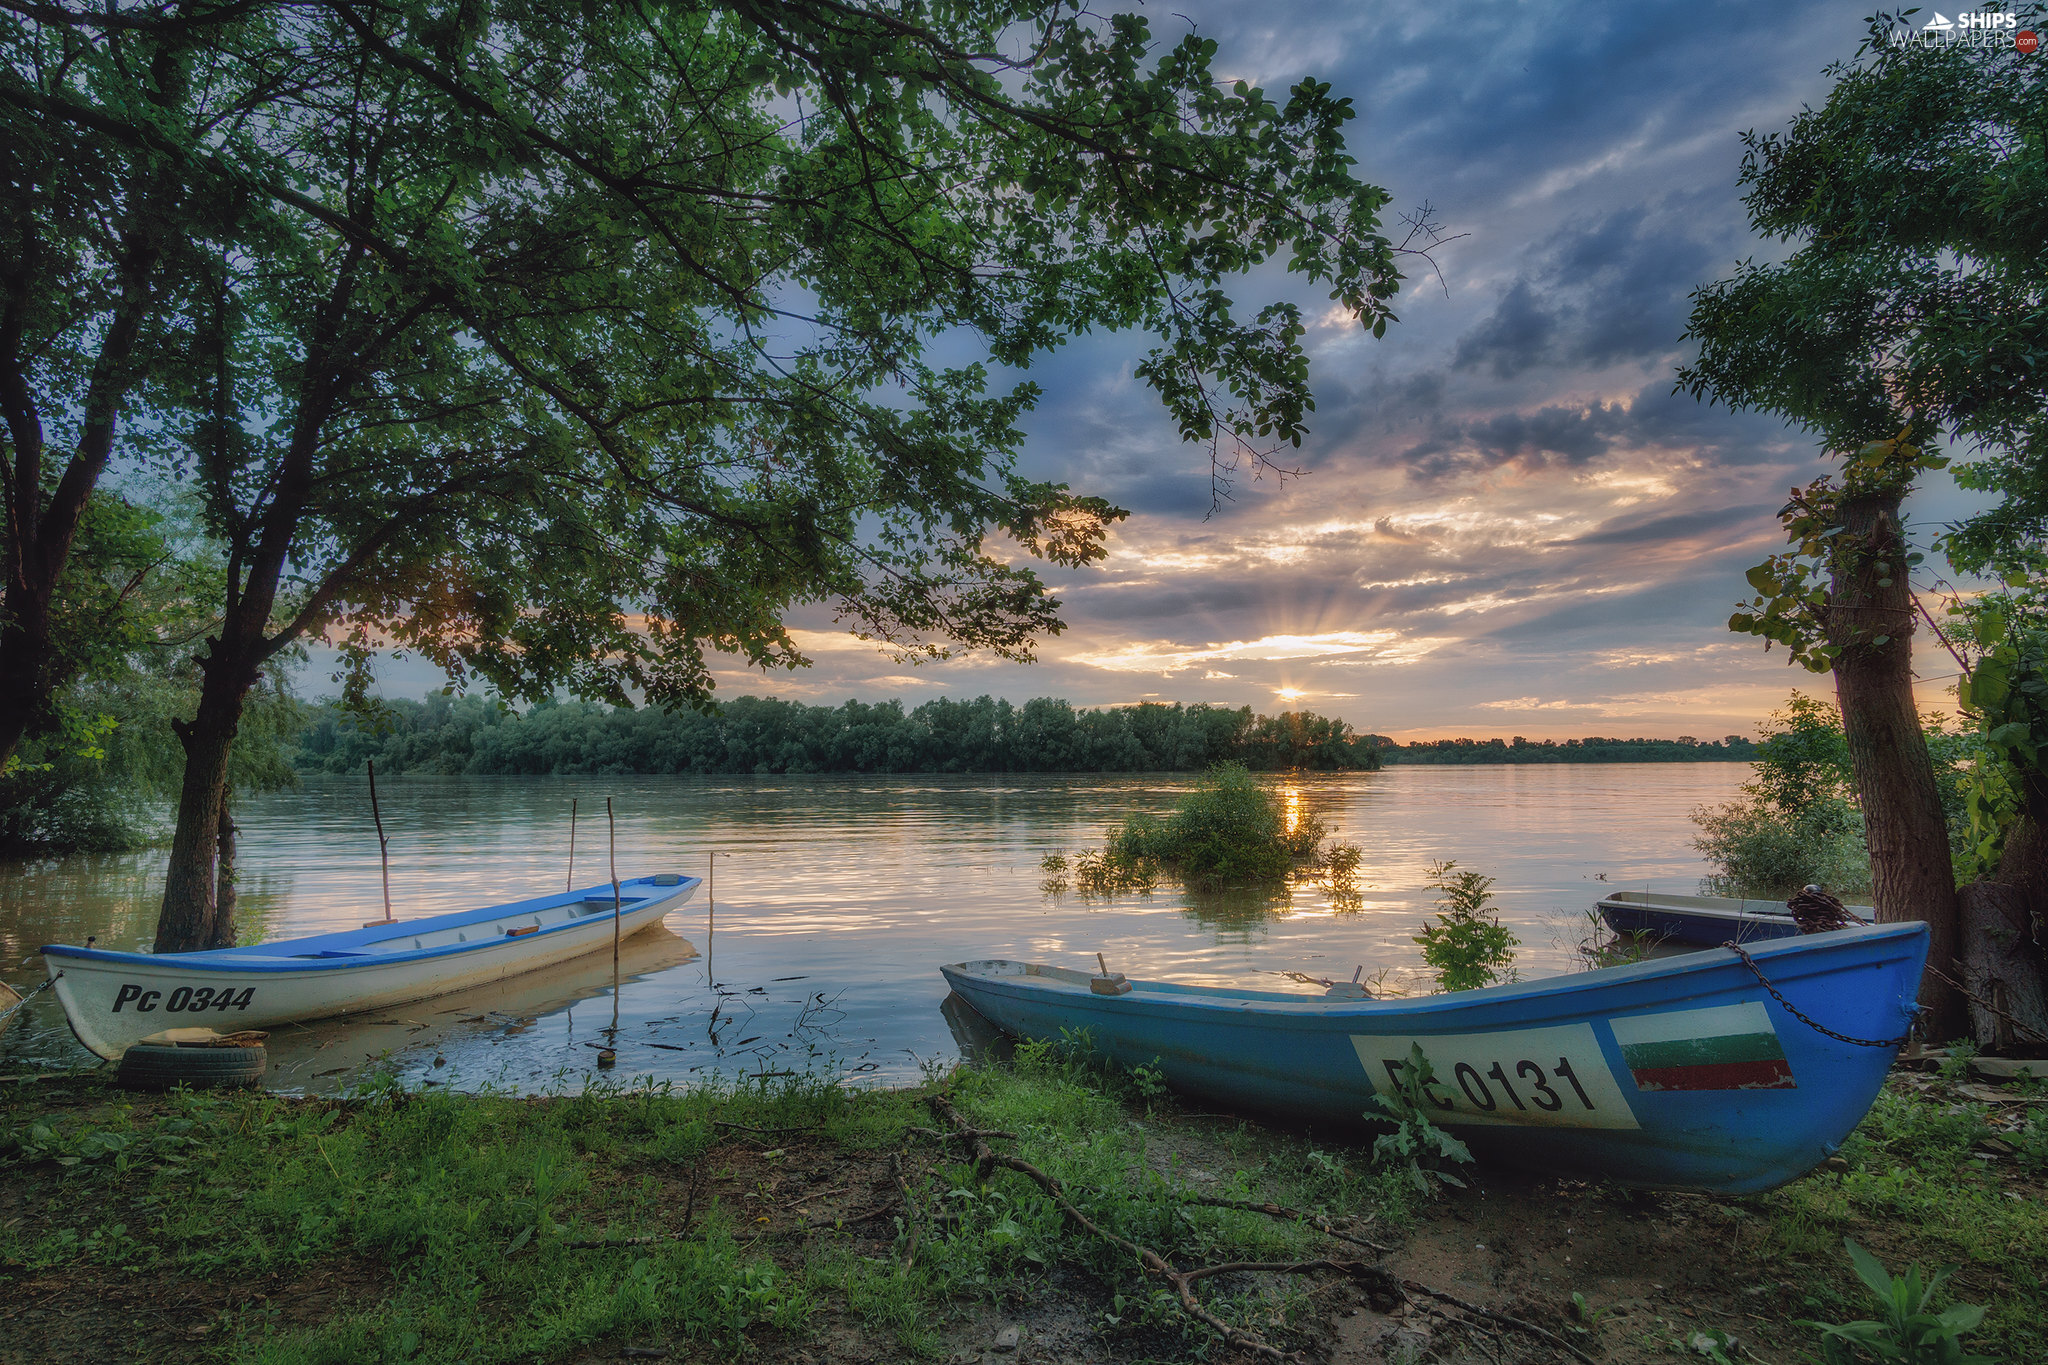 coast, lake, viewes, Great Sunsets, trees, boats